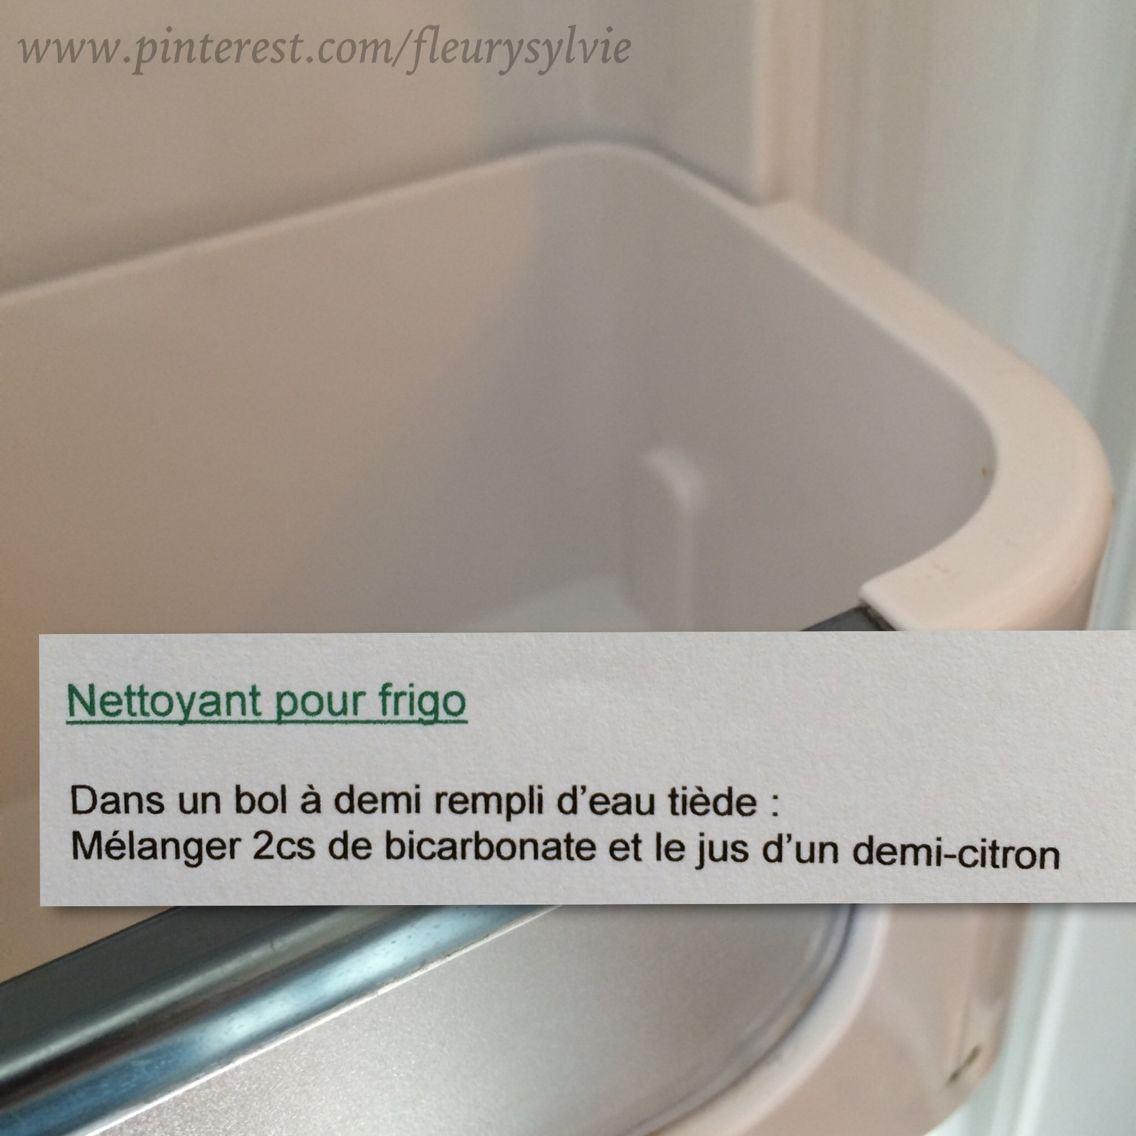 nettoyant pour frigo j 39 ai test a marche astuces pinterest. Black Bedroom Furniture Sets. Home Design Ideas